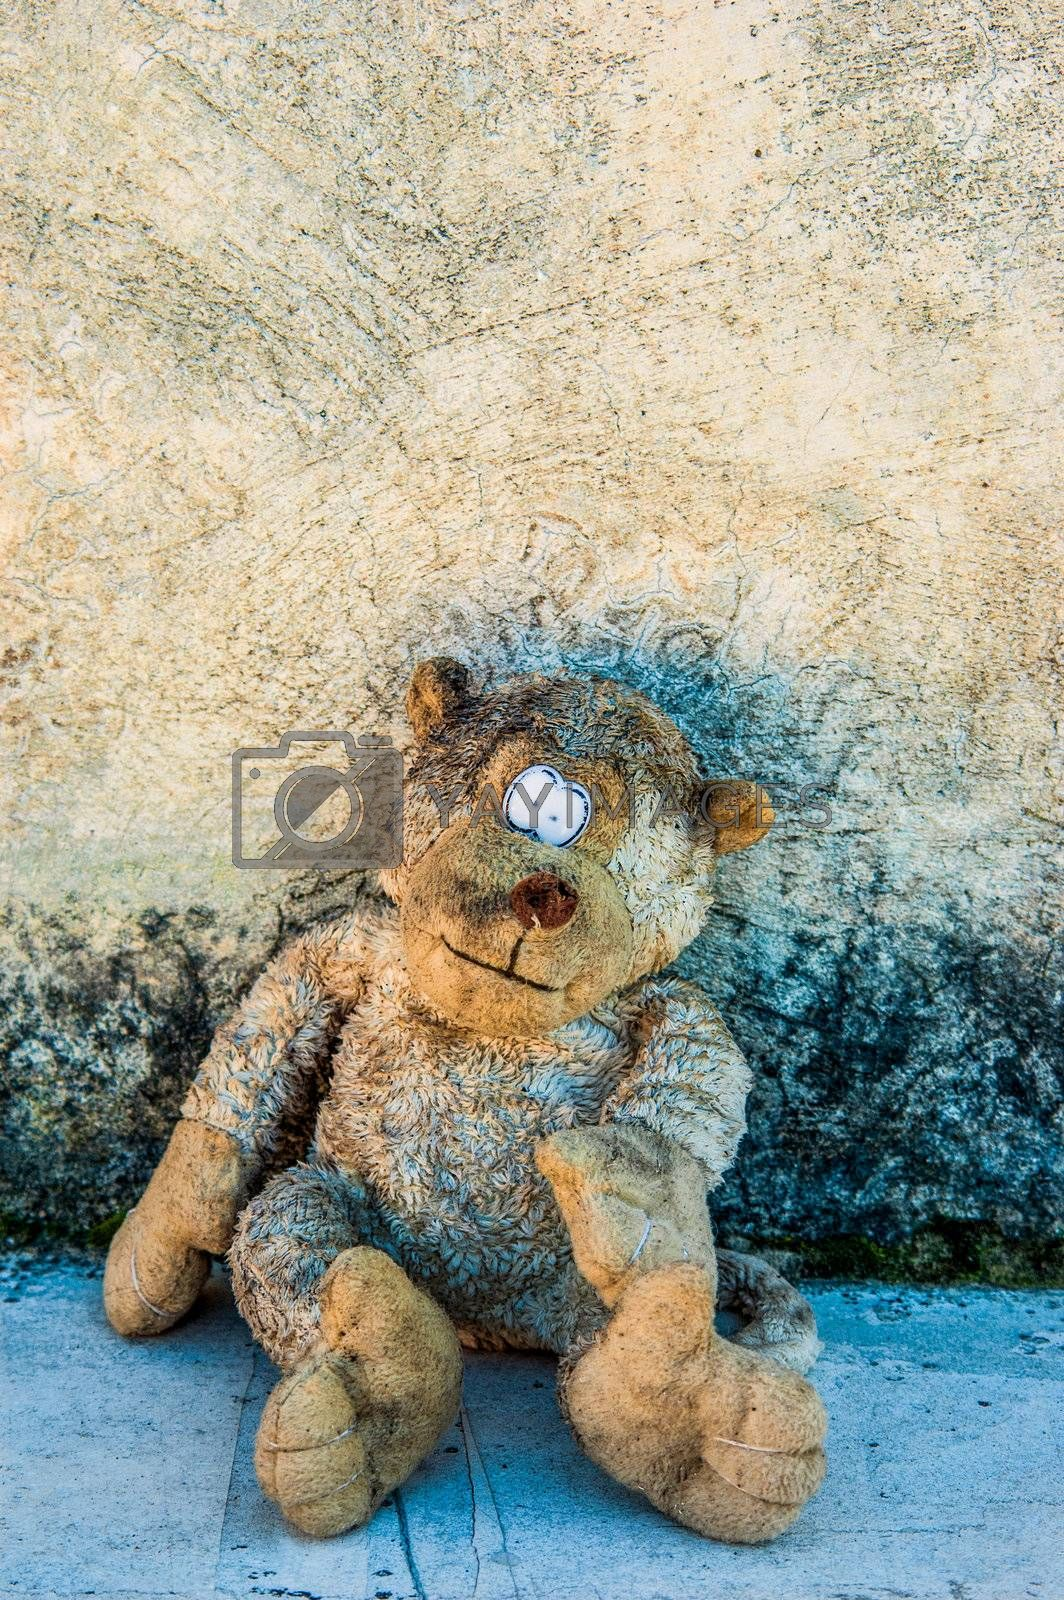 A dirty and old teddy bear against a grunge wall